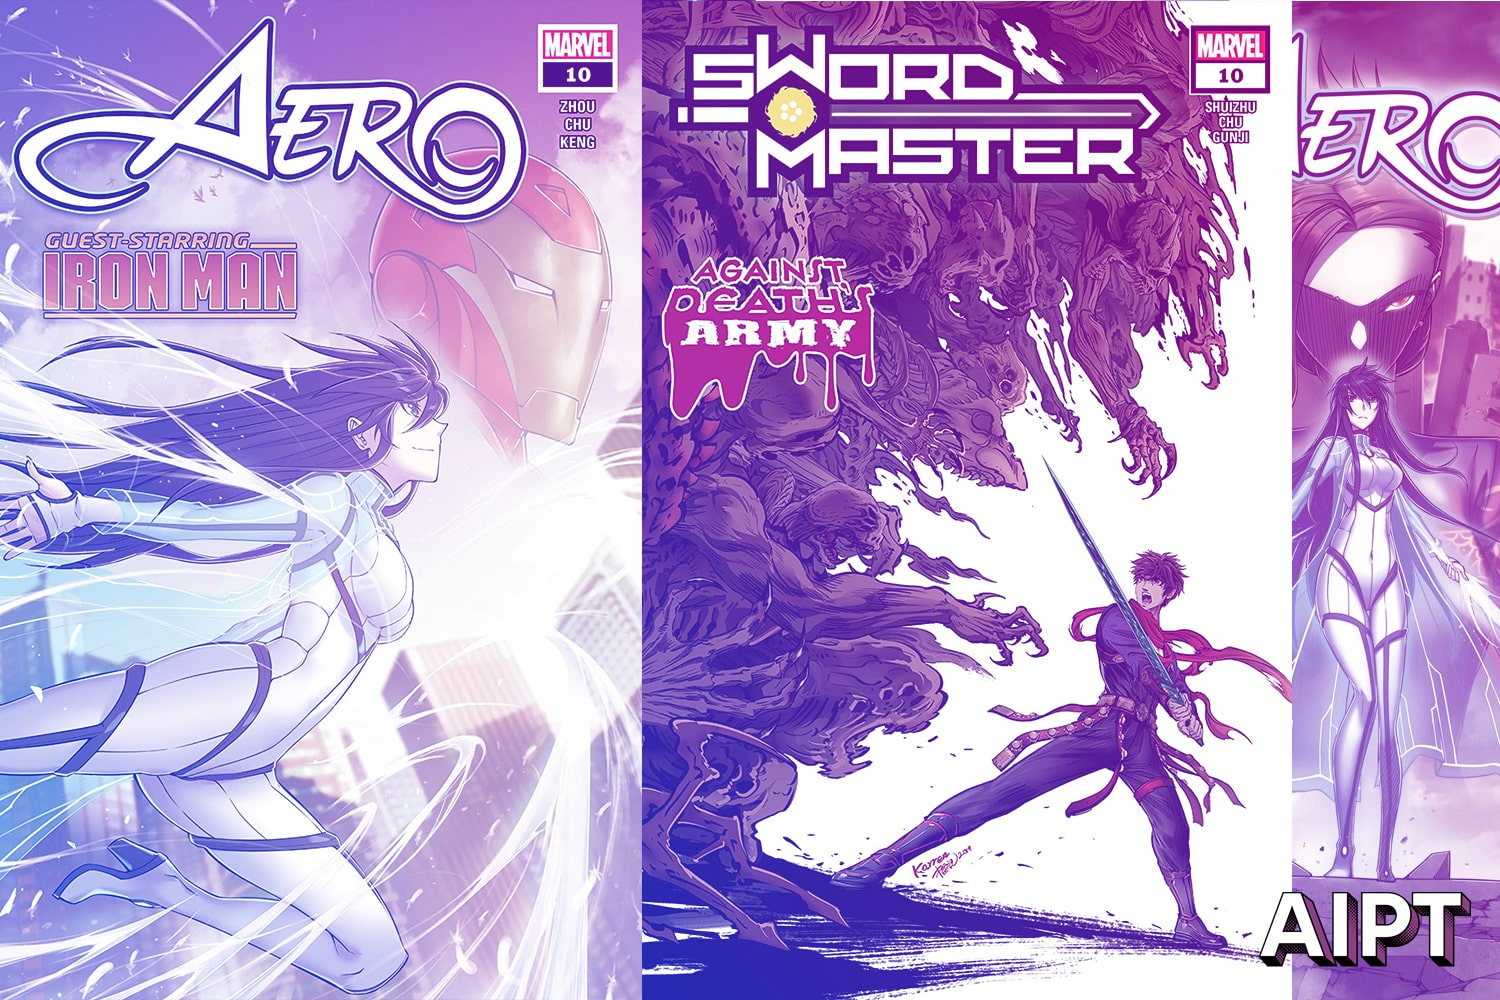 Marvel announces 'Aero' and 'Sword Master' to return August 2020